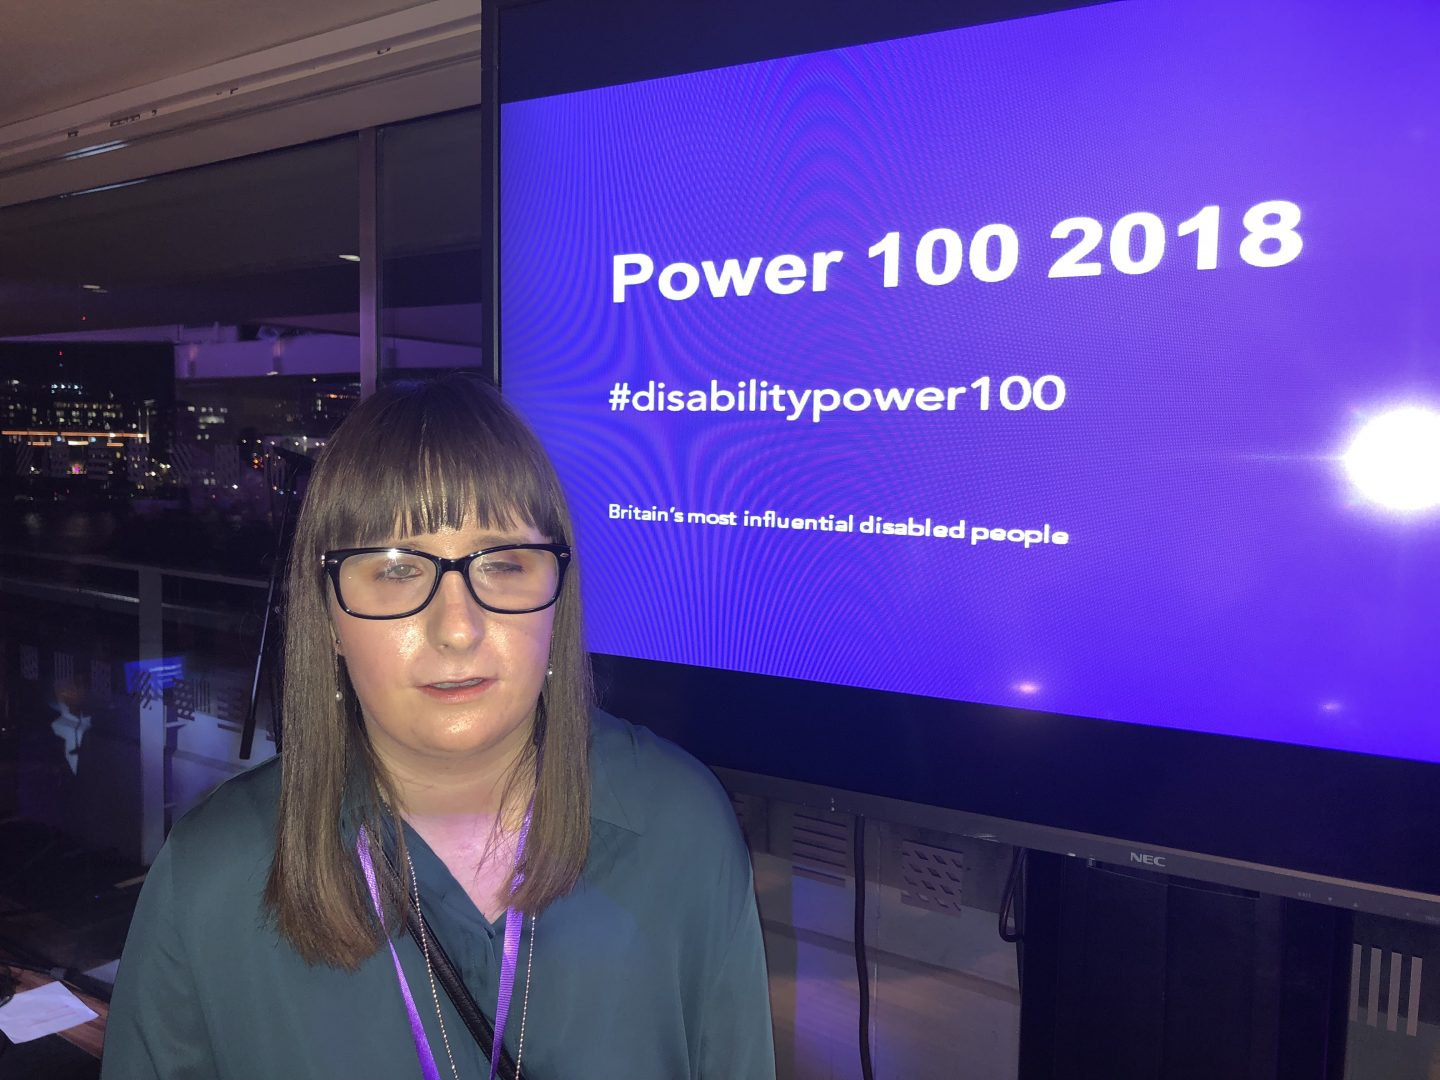 A photo of Holly with the 'Disability Power 100 2018' screen in the background